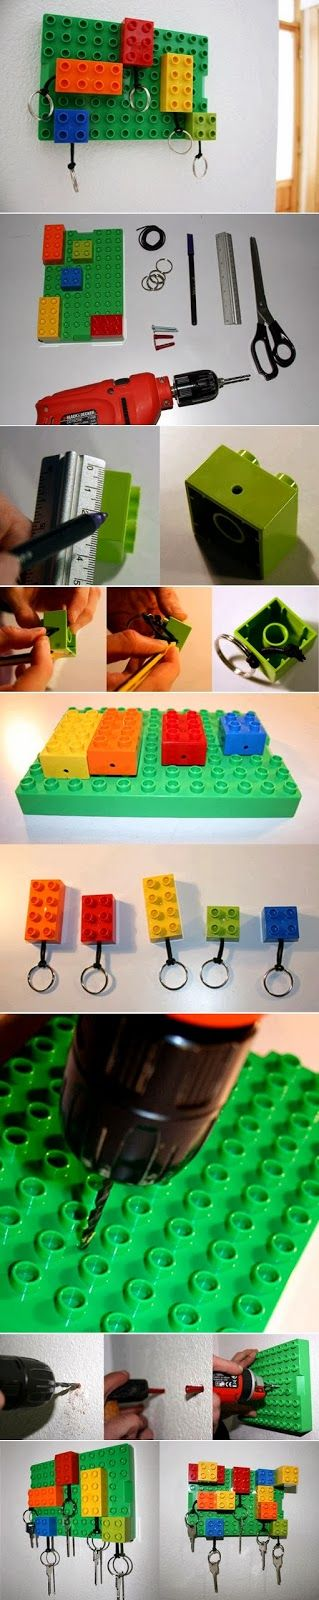 Diy Lego Key Hanger - love it!  Everyone gets a color so you know who's is missing!